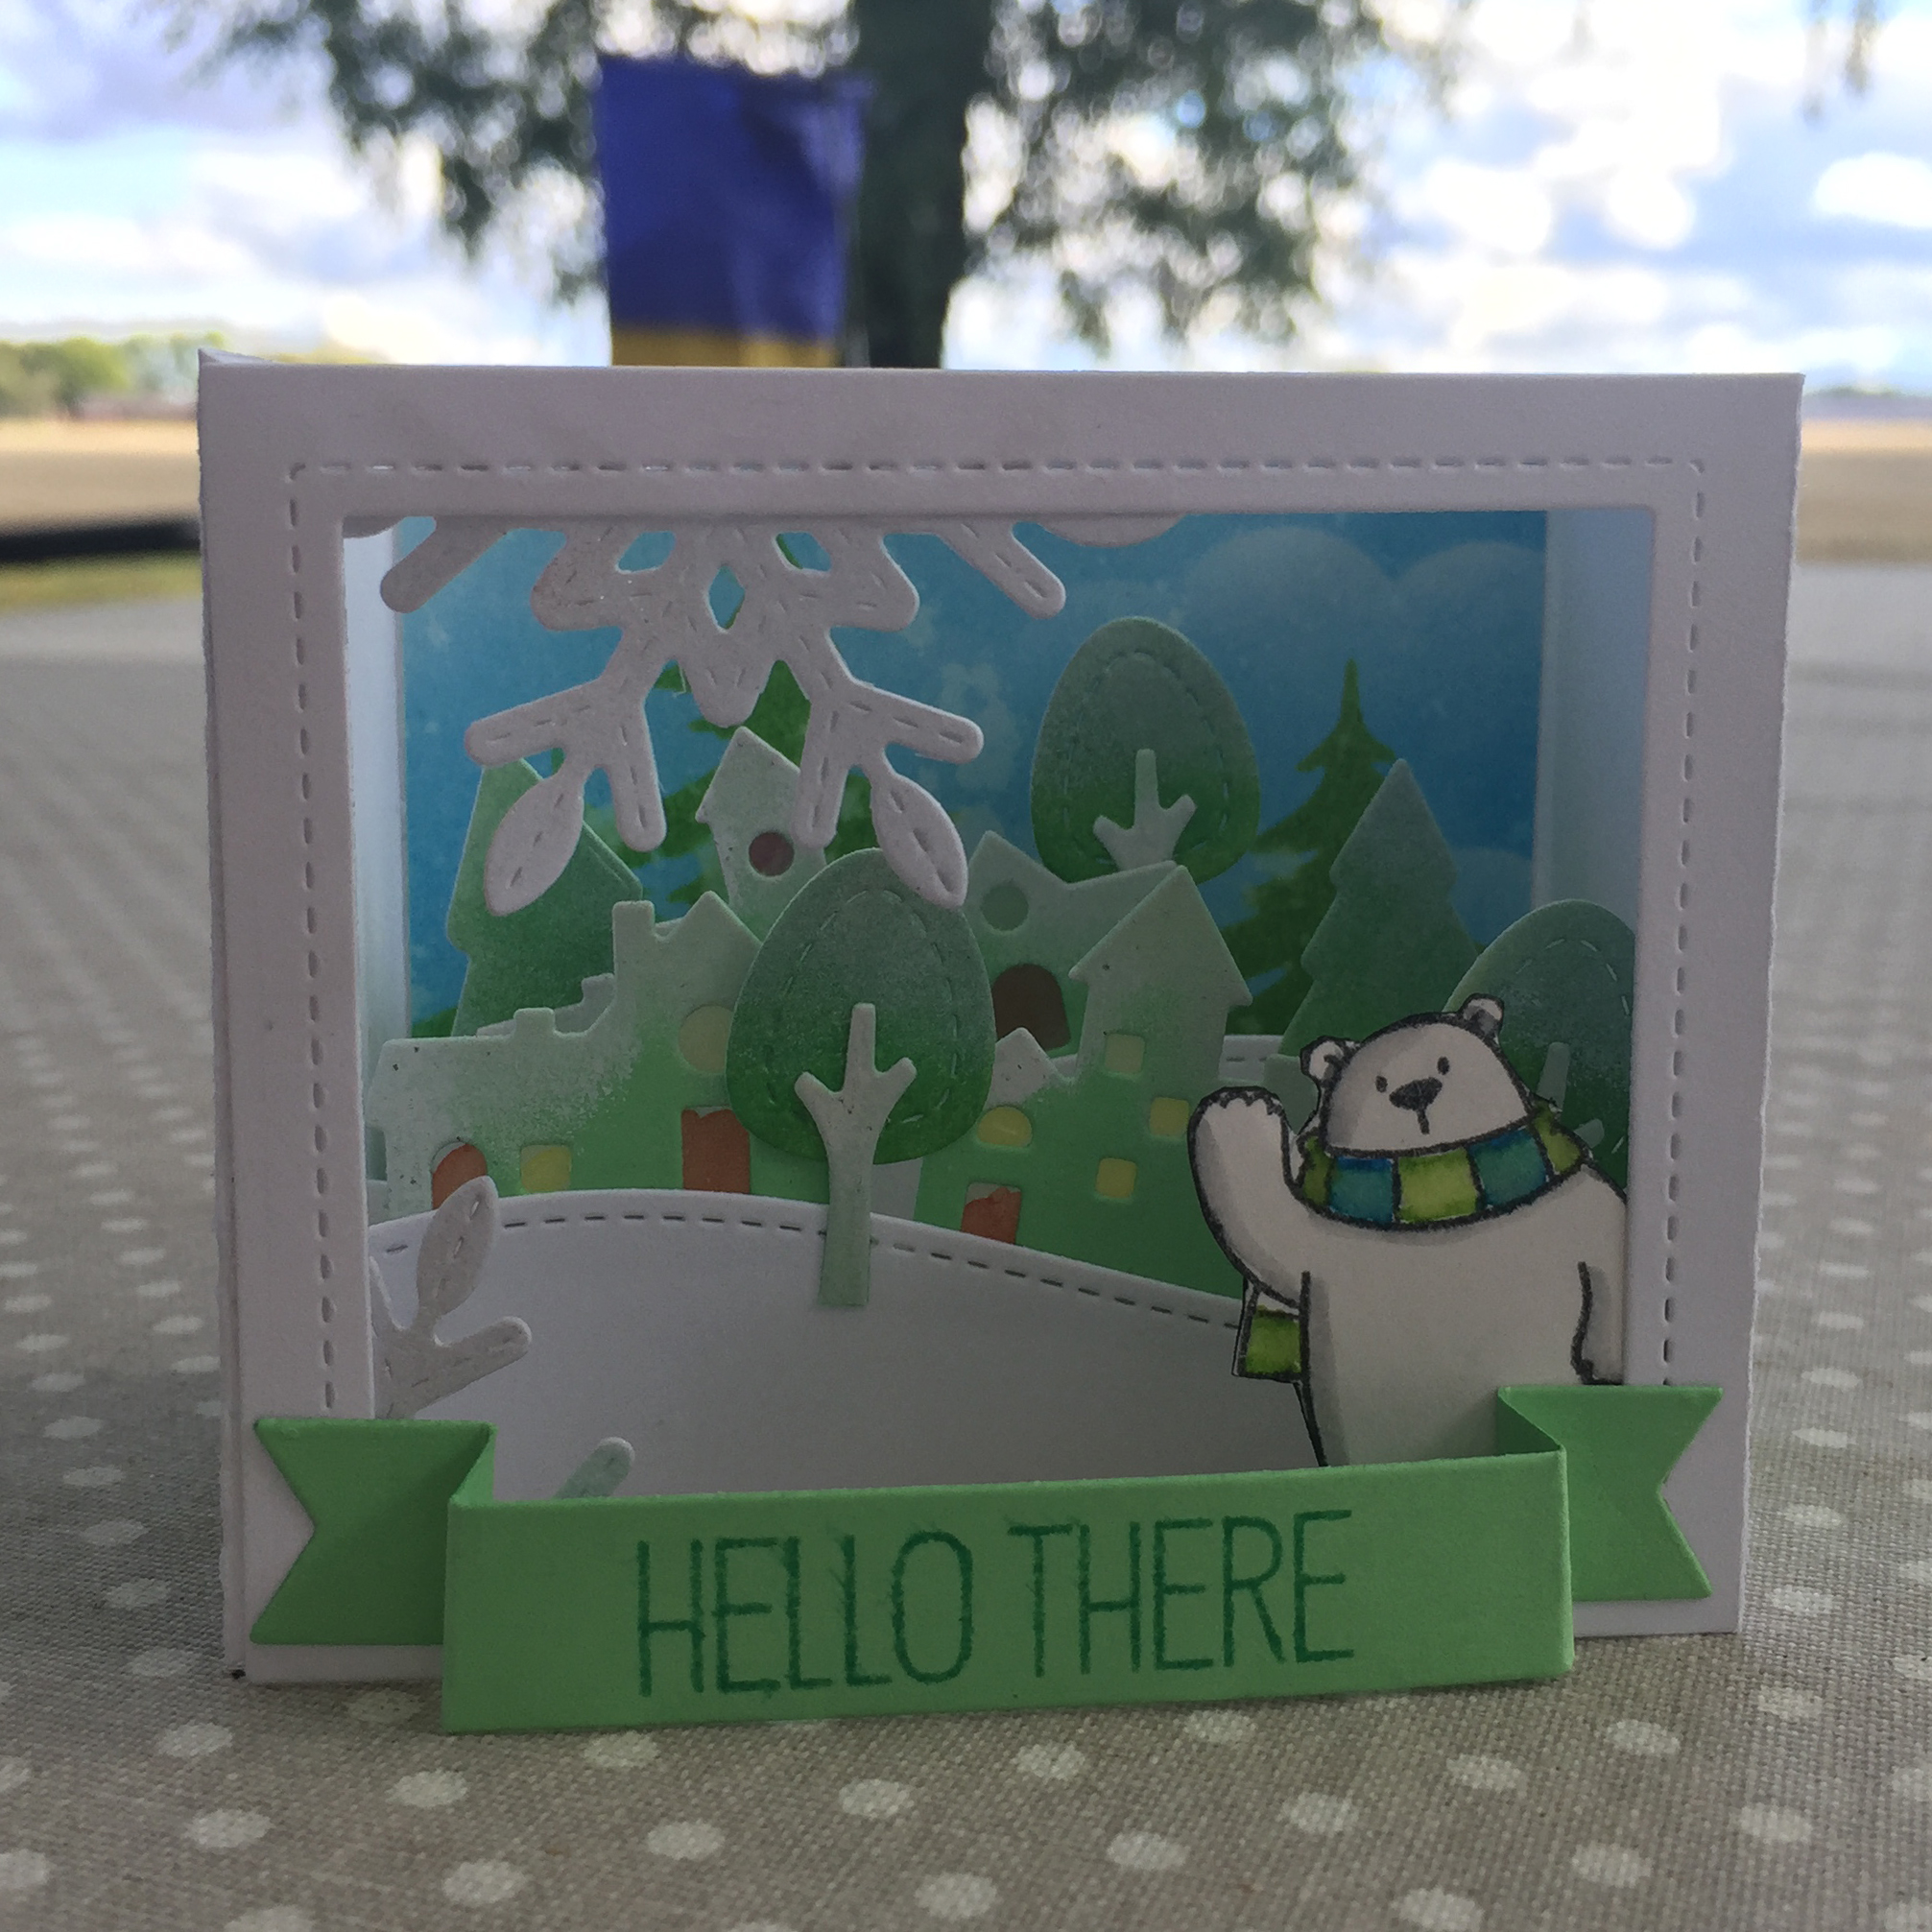 Shadowbox - hello there